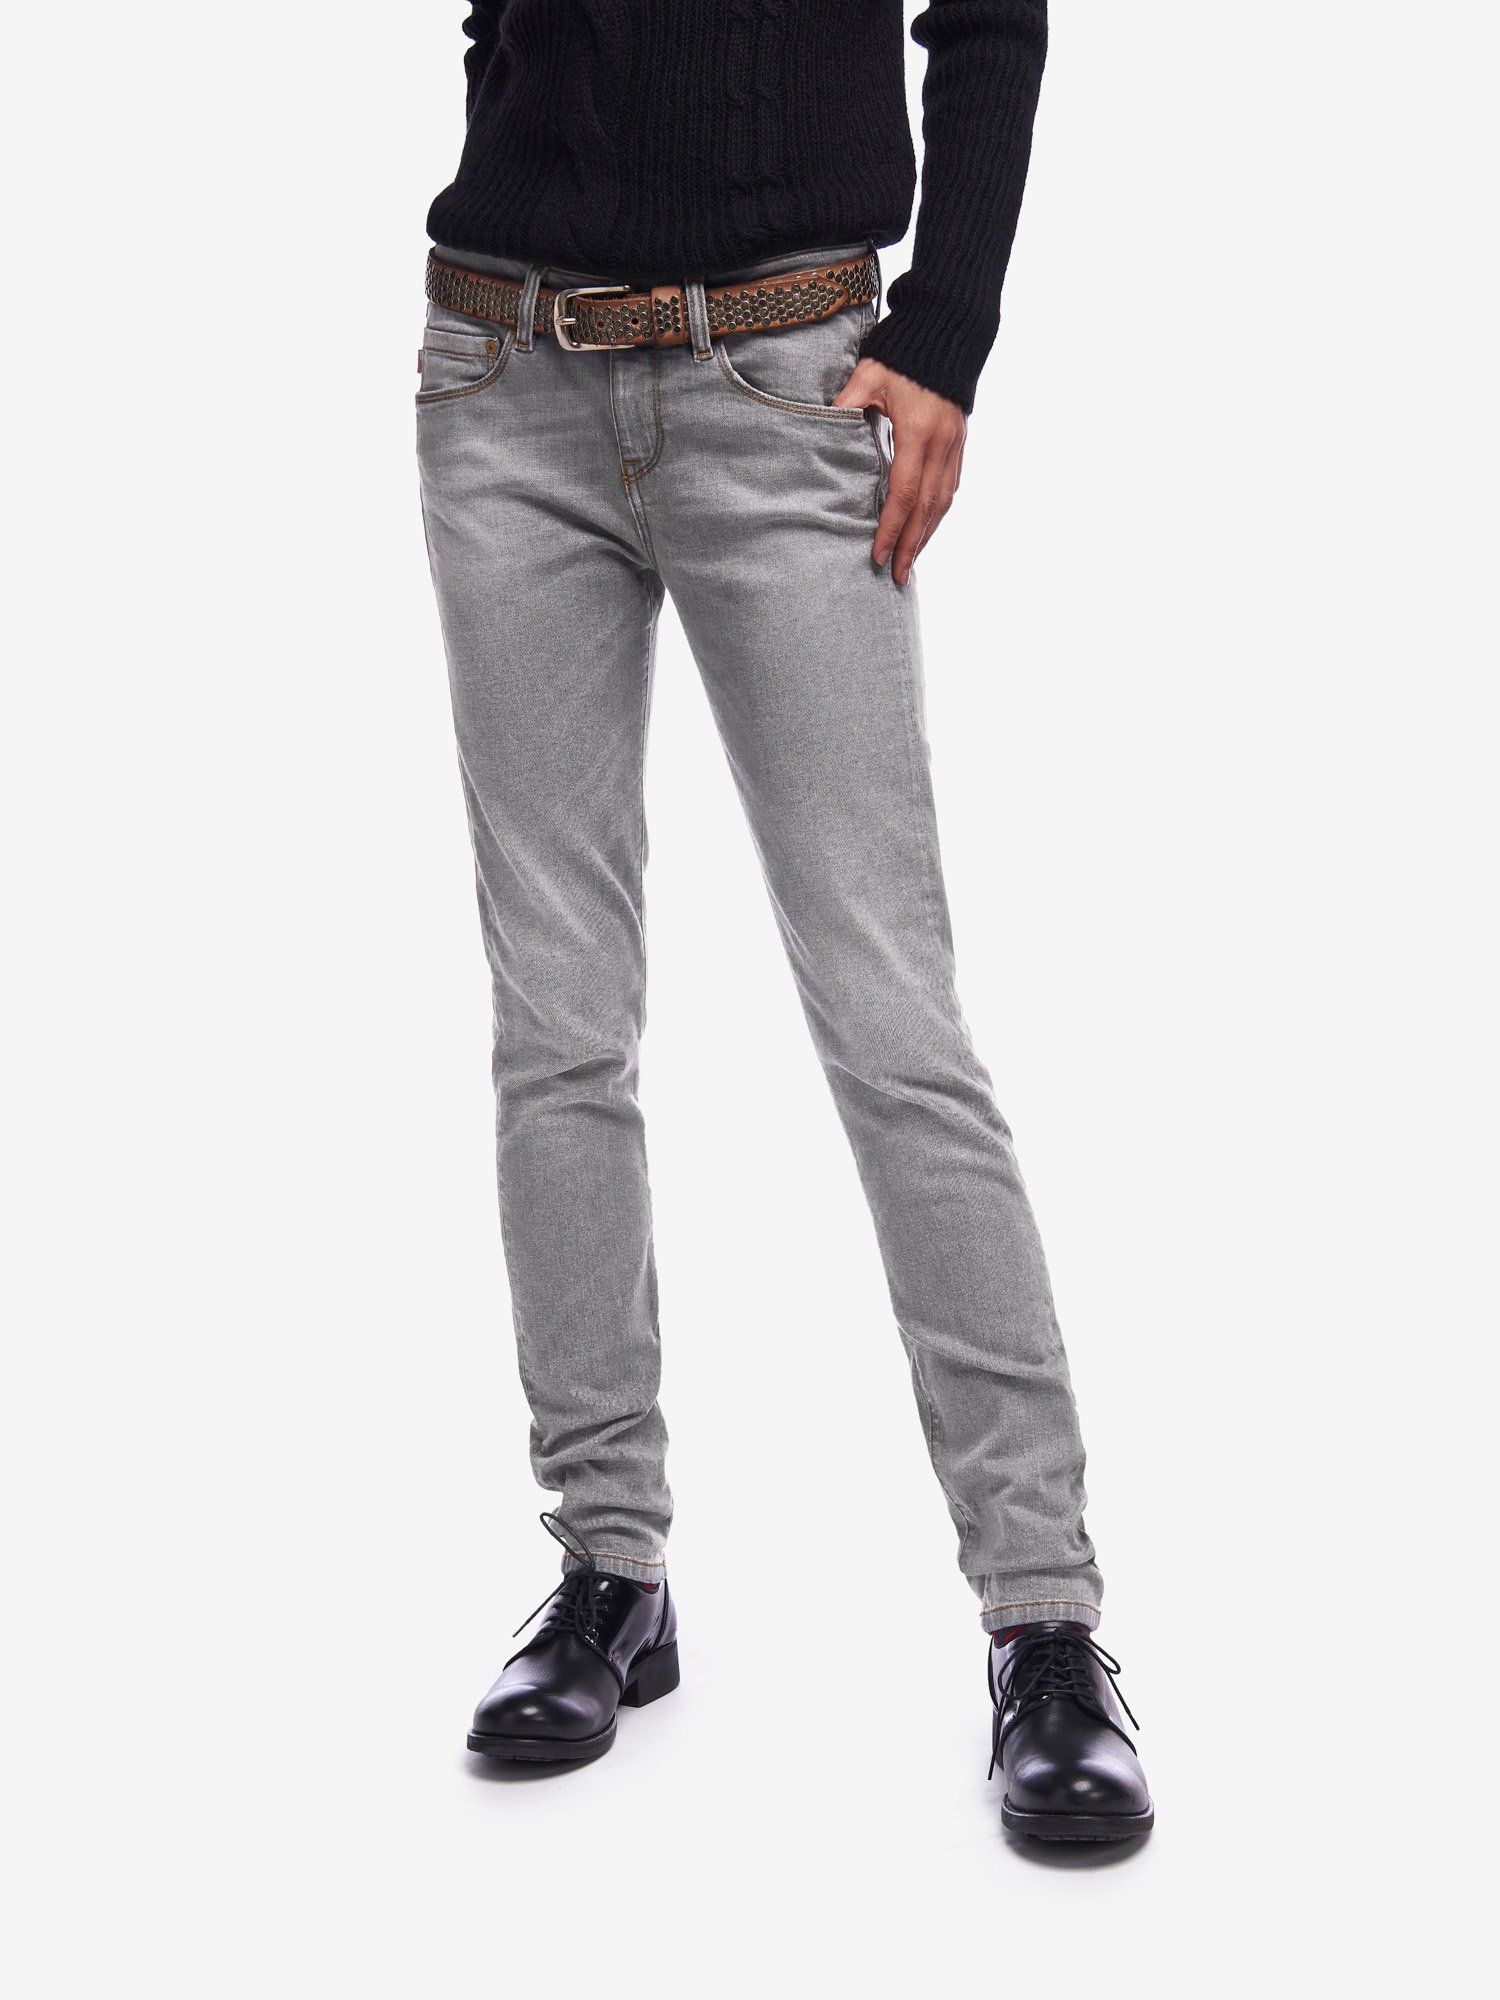 OLD USED GREY JEANS - Blauer